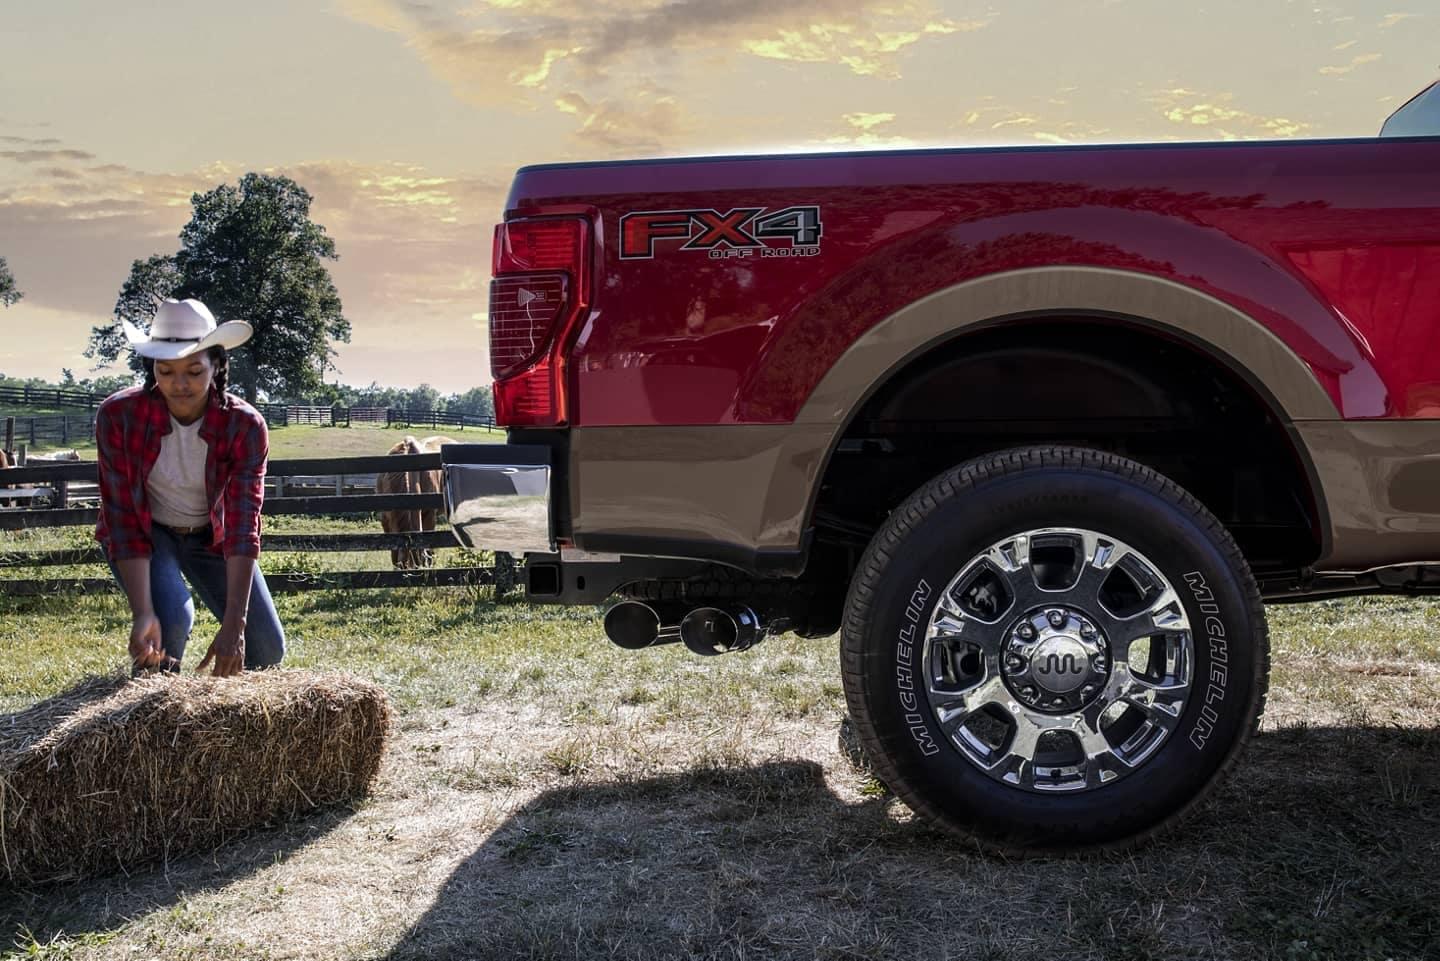 loading hay into a Ford Super Duty truck